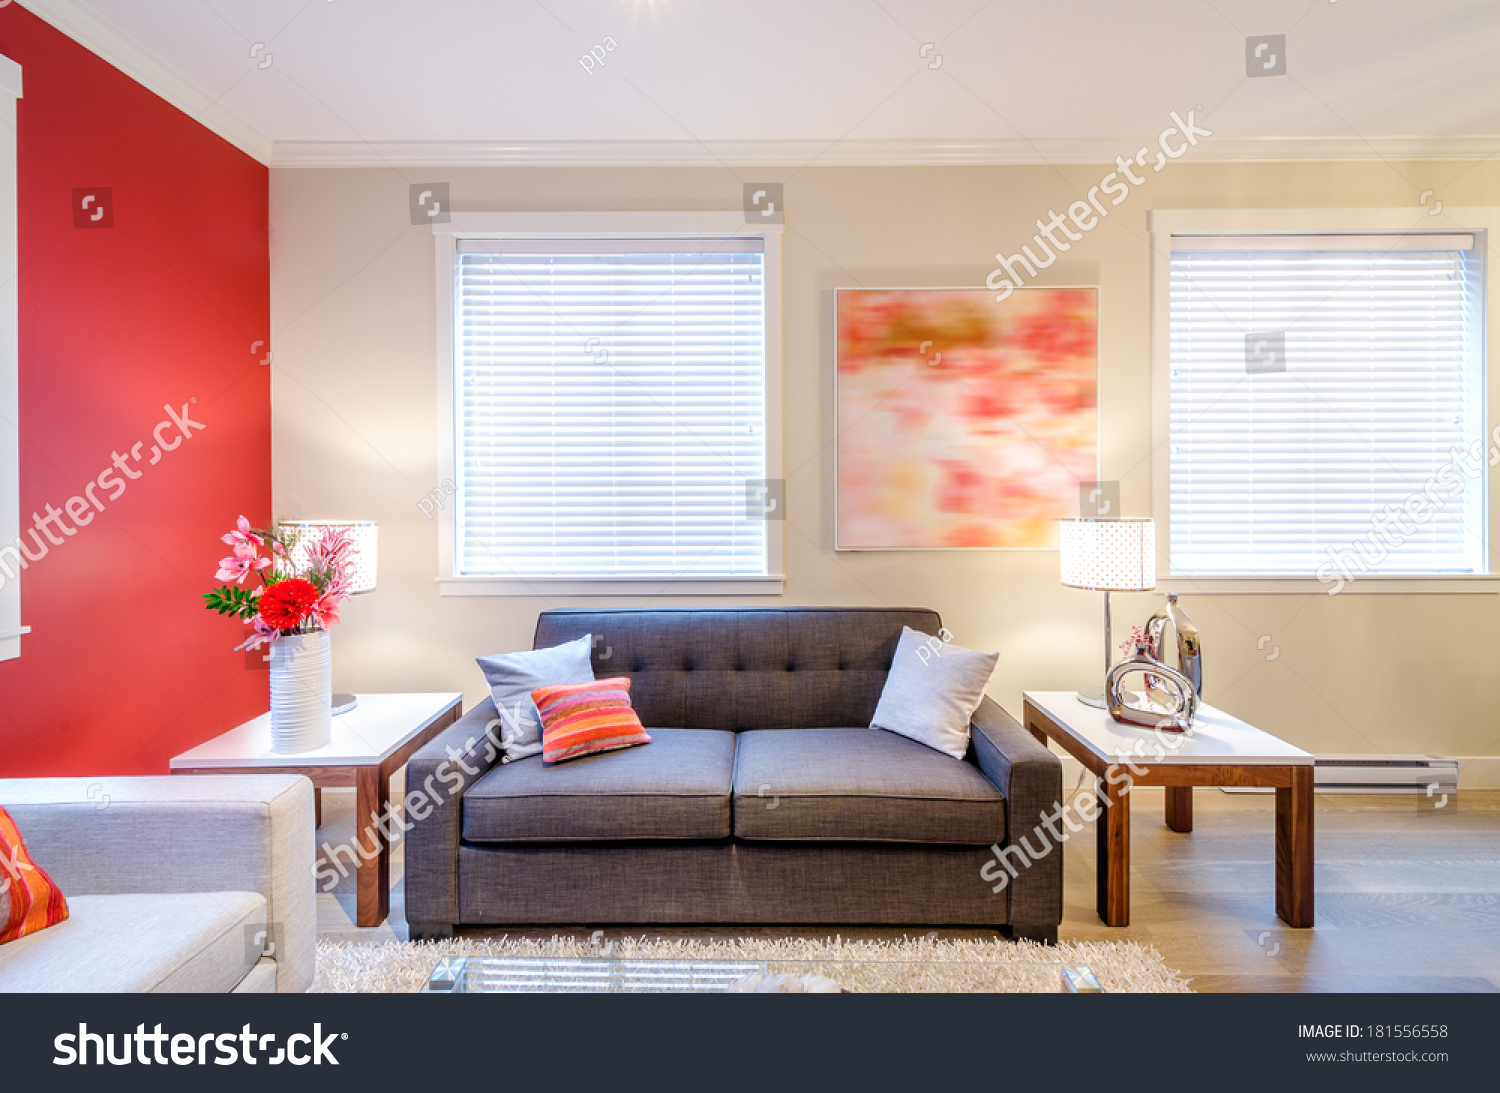 Modern red living room interior design stock photo for Official interior design